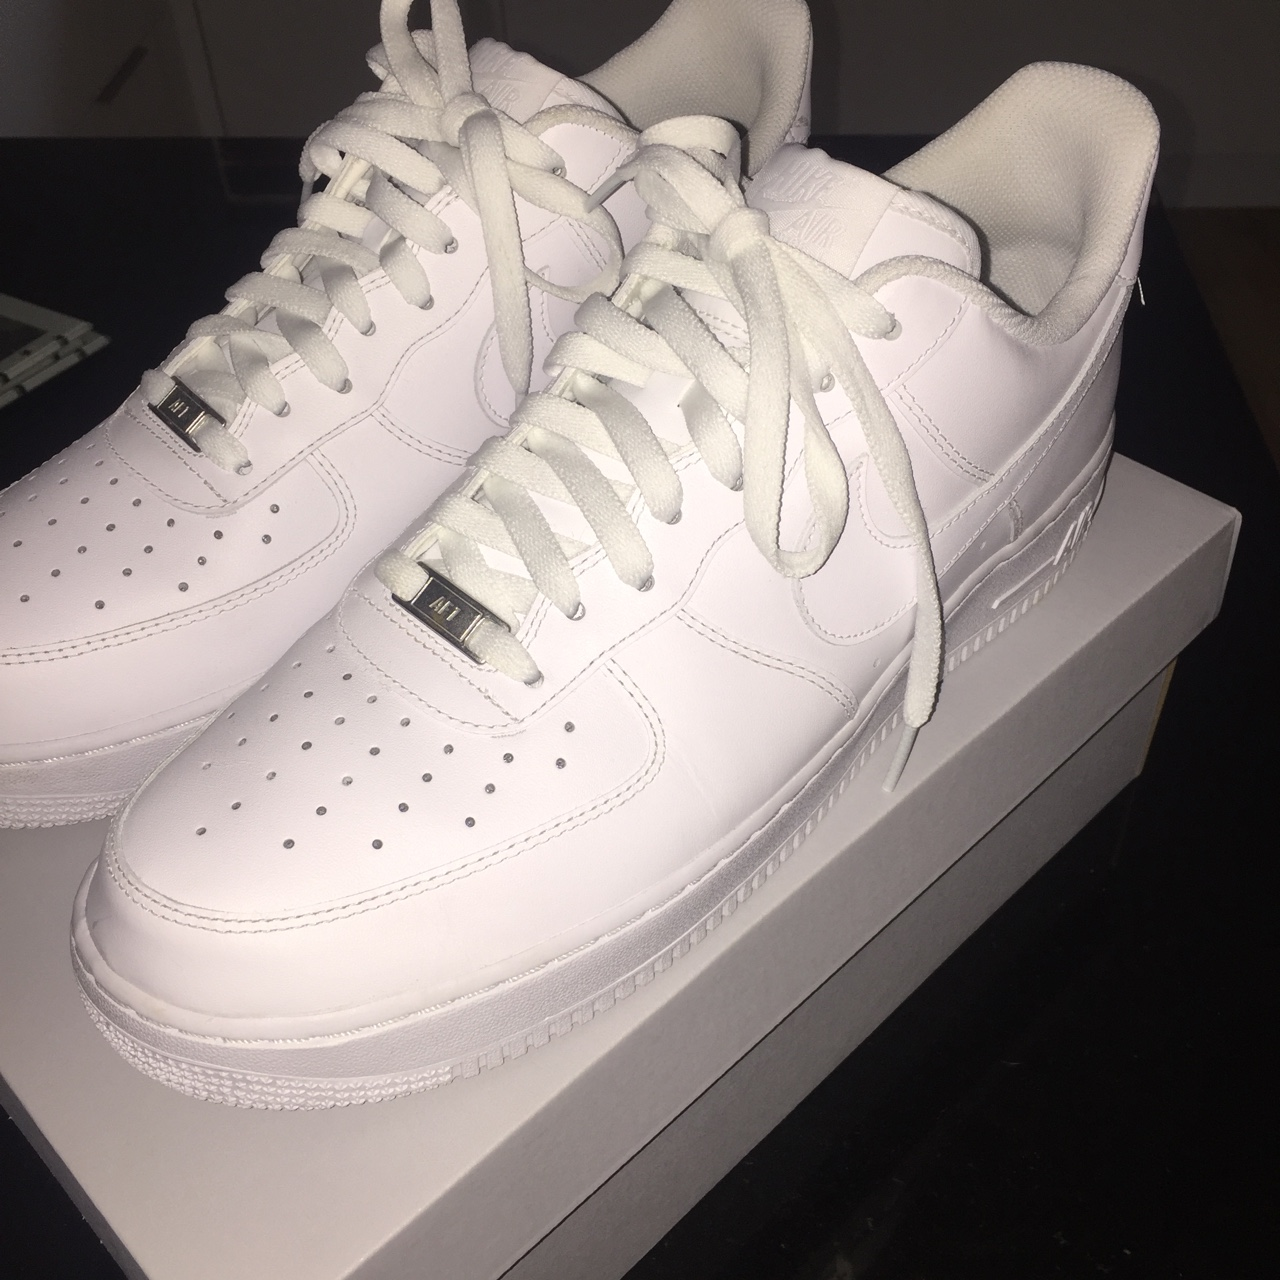 nike air force 1 size 11.5 Shop